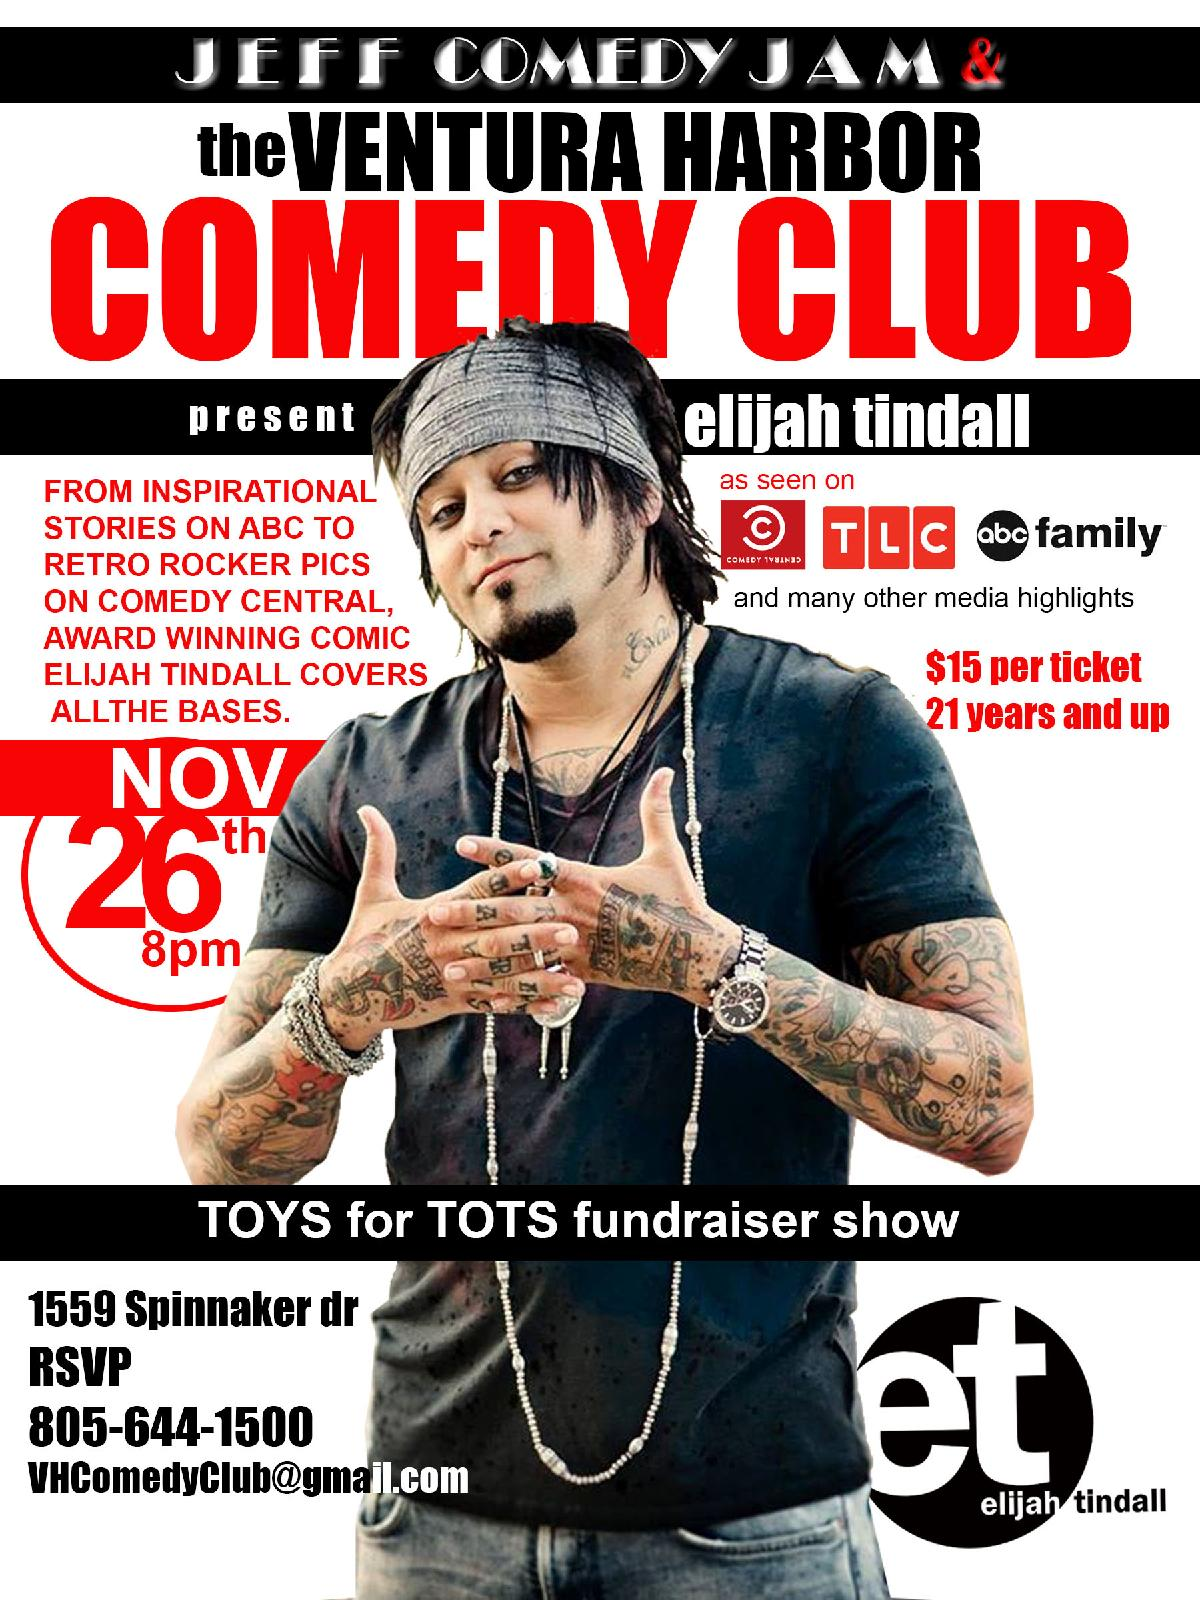 The Jeff Comedy Jam with Elijah Tindall Toys For Tots Fundraiser